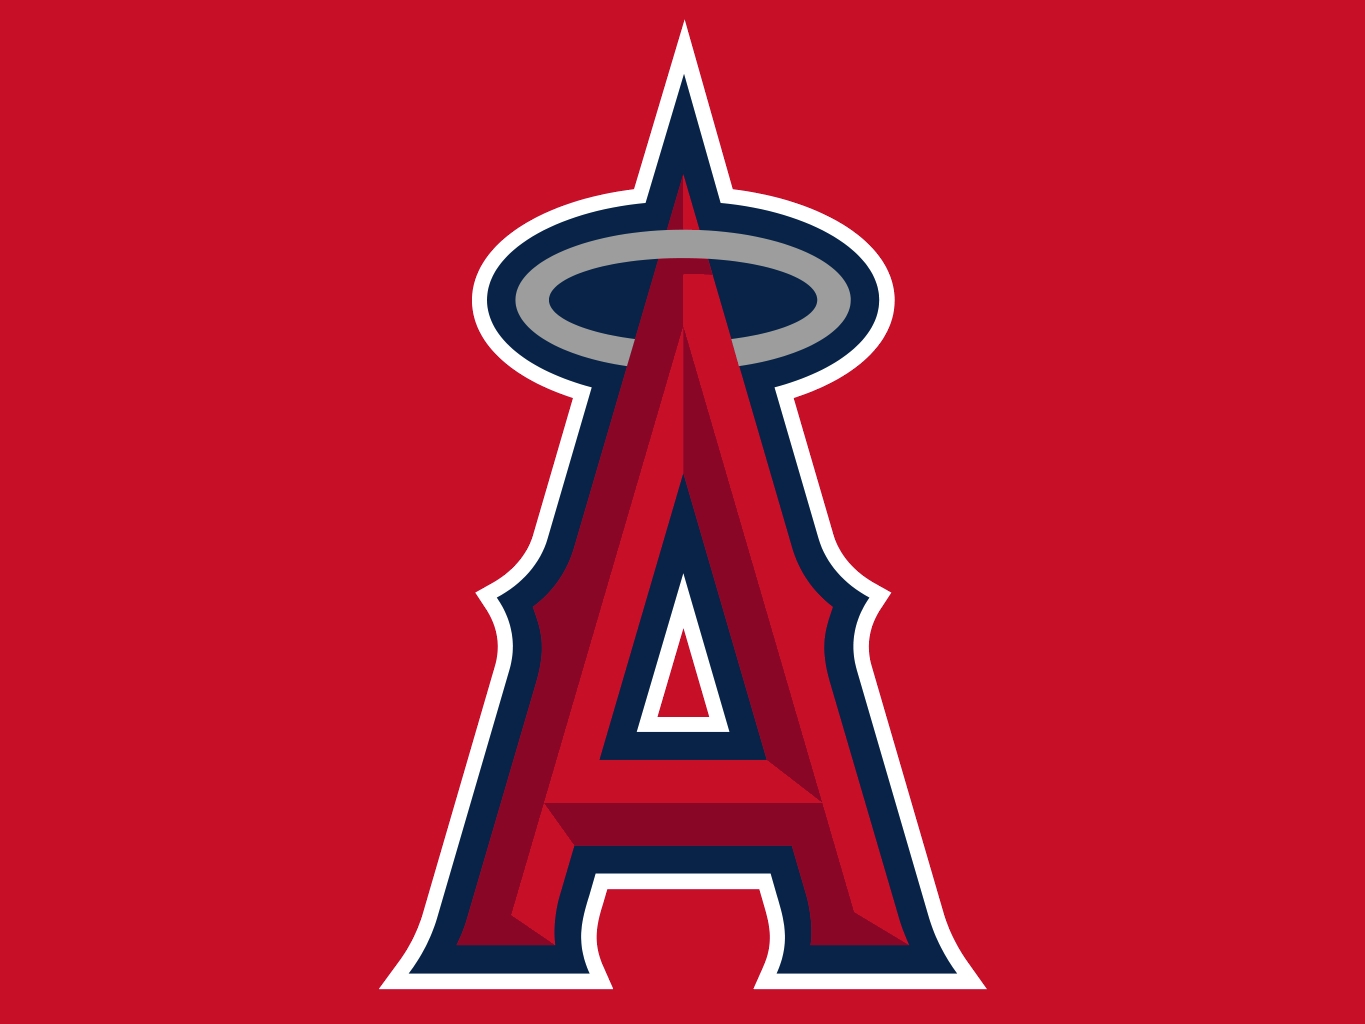 Los Angeles Angels of Anaheim wallpapers Los Angeles Angels of 1365x1024